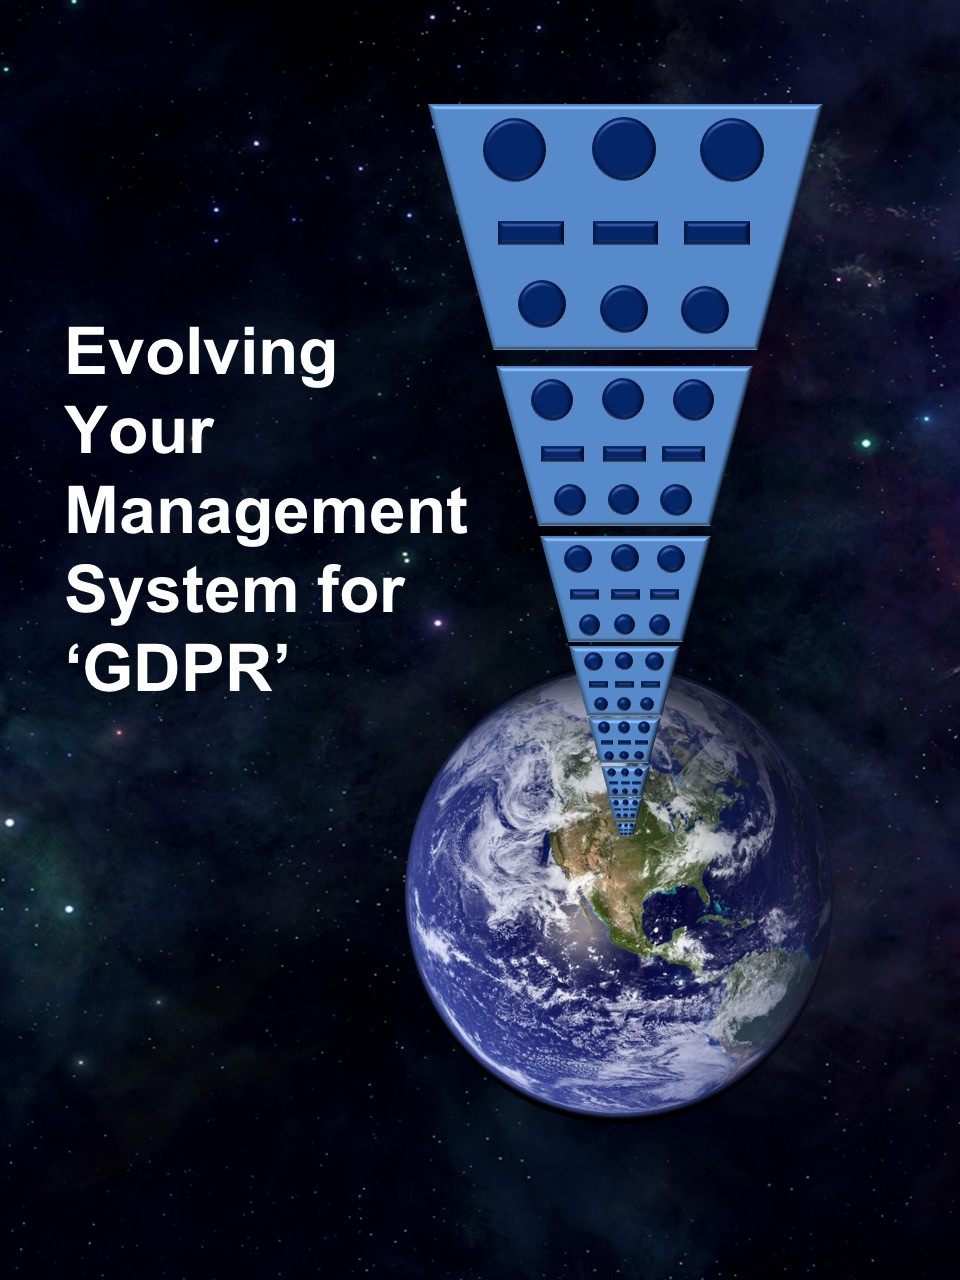 Integrated Management and GDPR